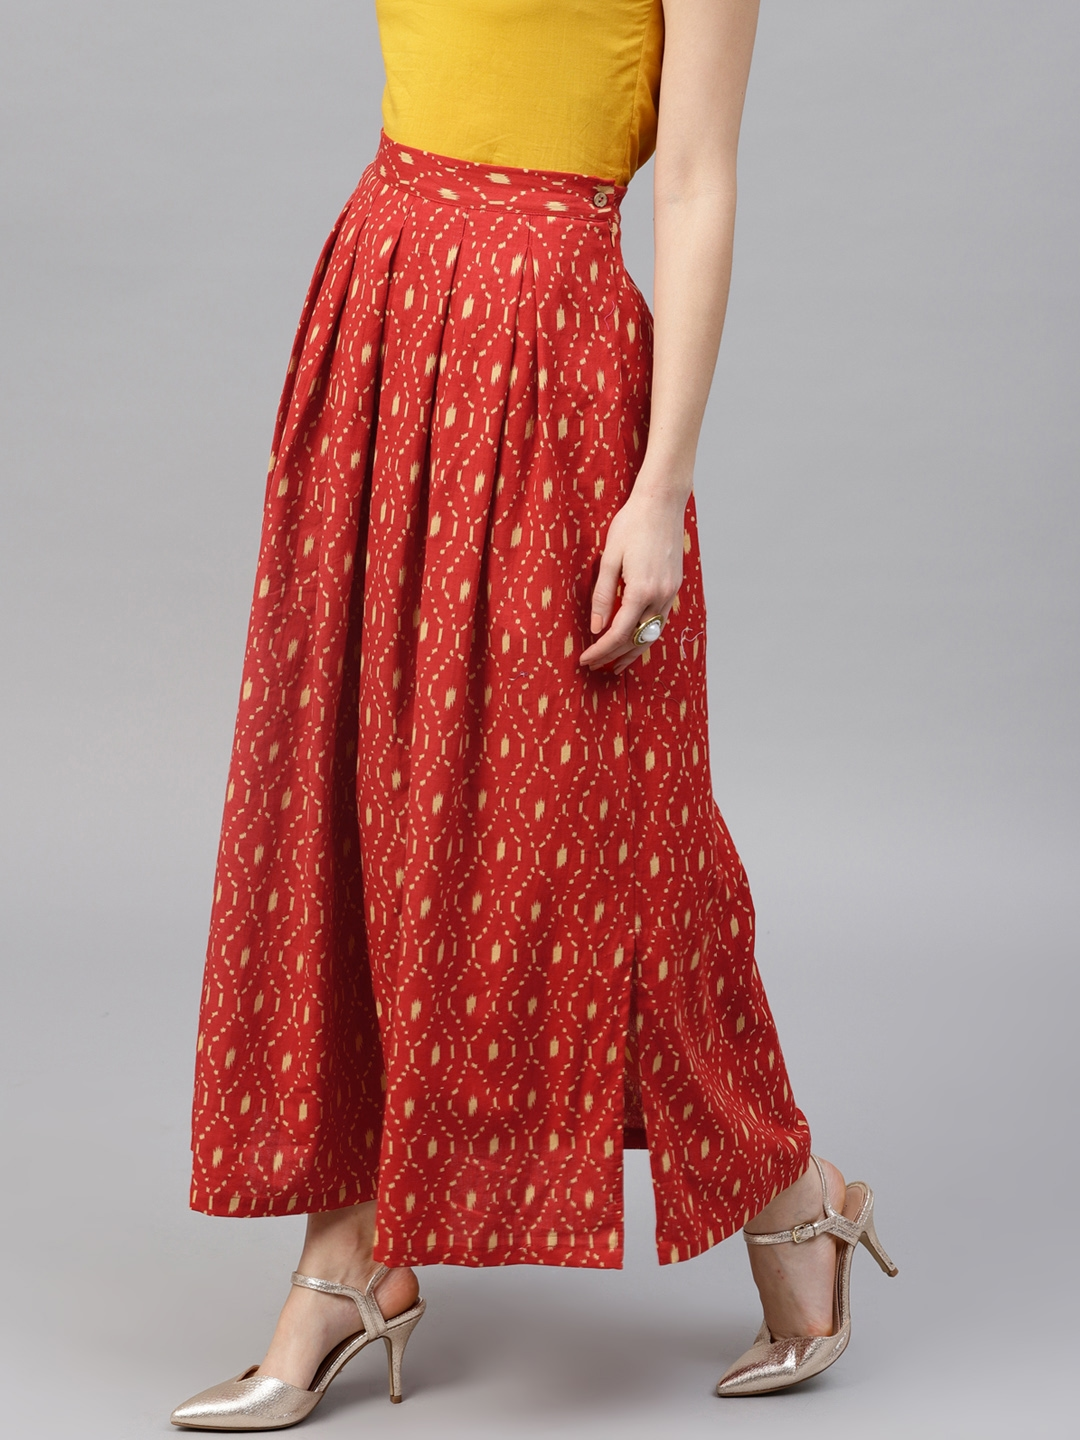 9c2be0fd5 Buy AKS Red Printed Flared Maxi Skirt - Skirts for Women 6600877 ...